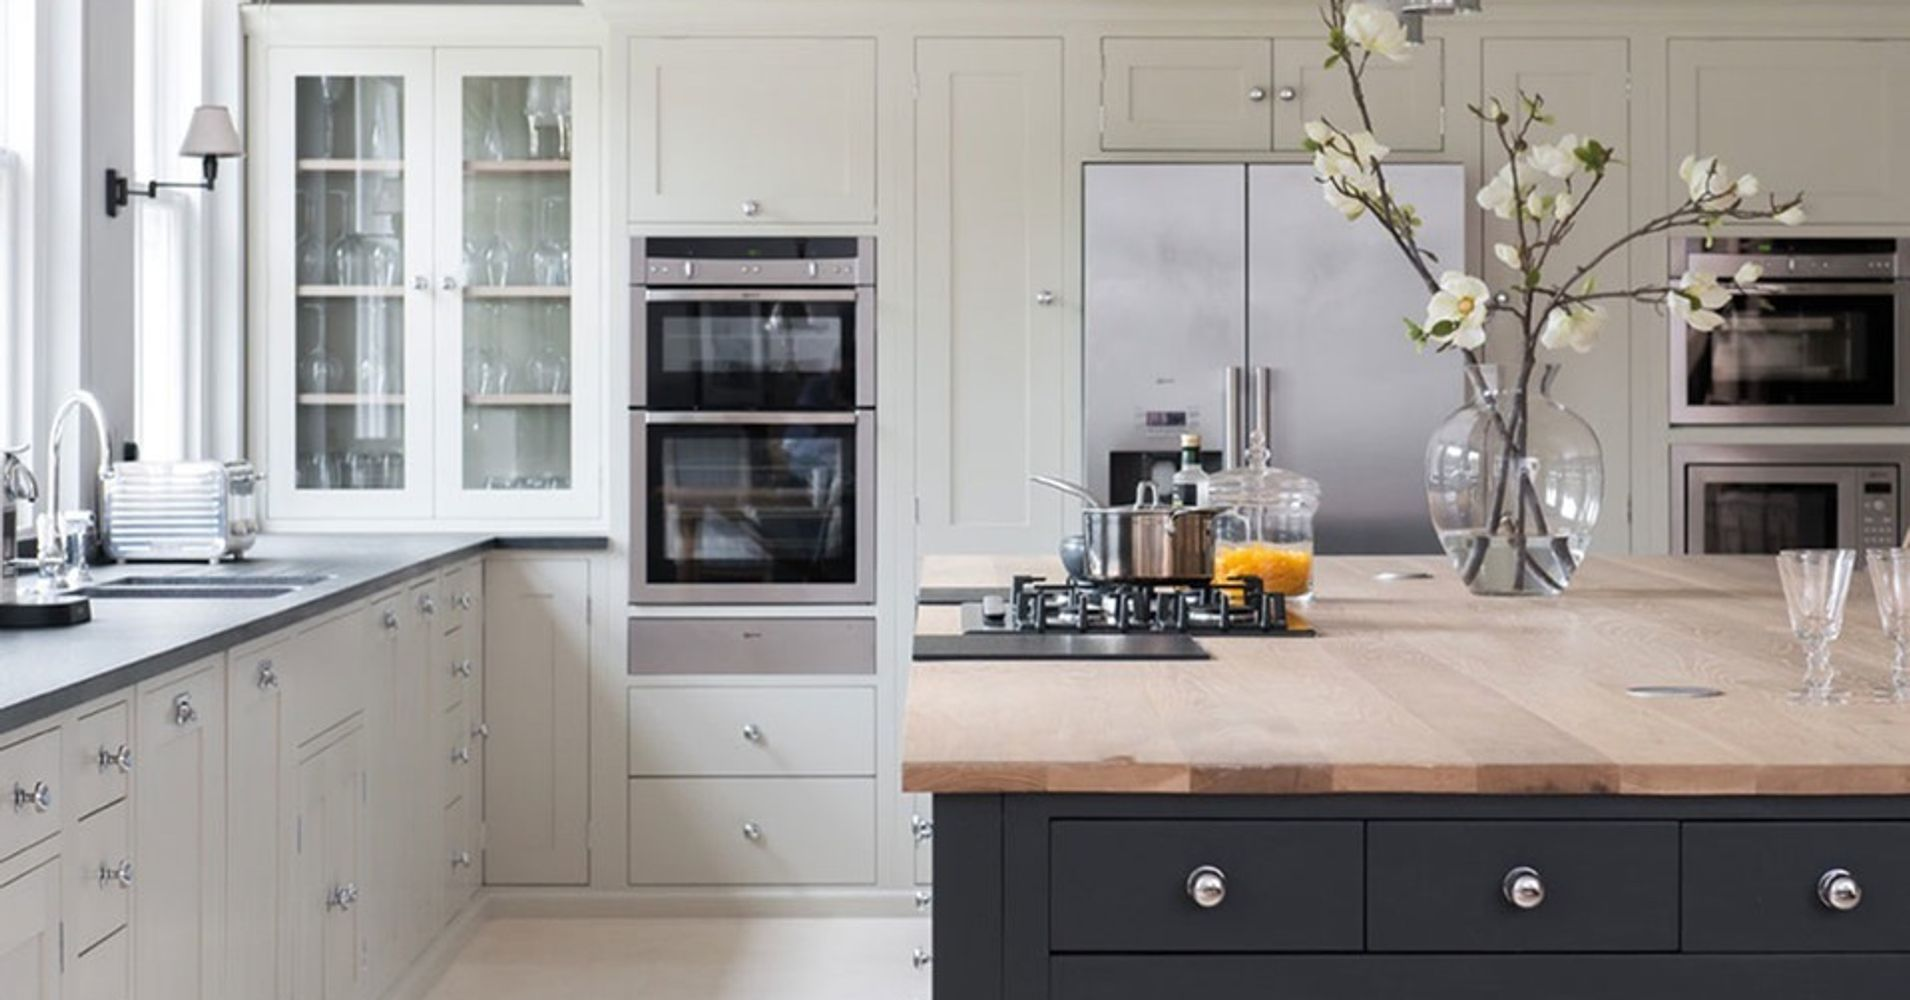 Sims  Construction Kitchen Cabinets